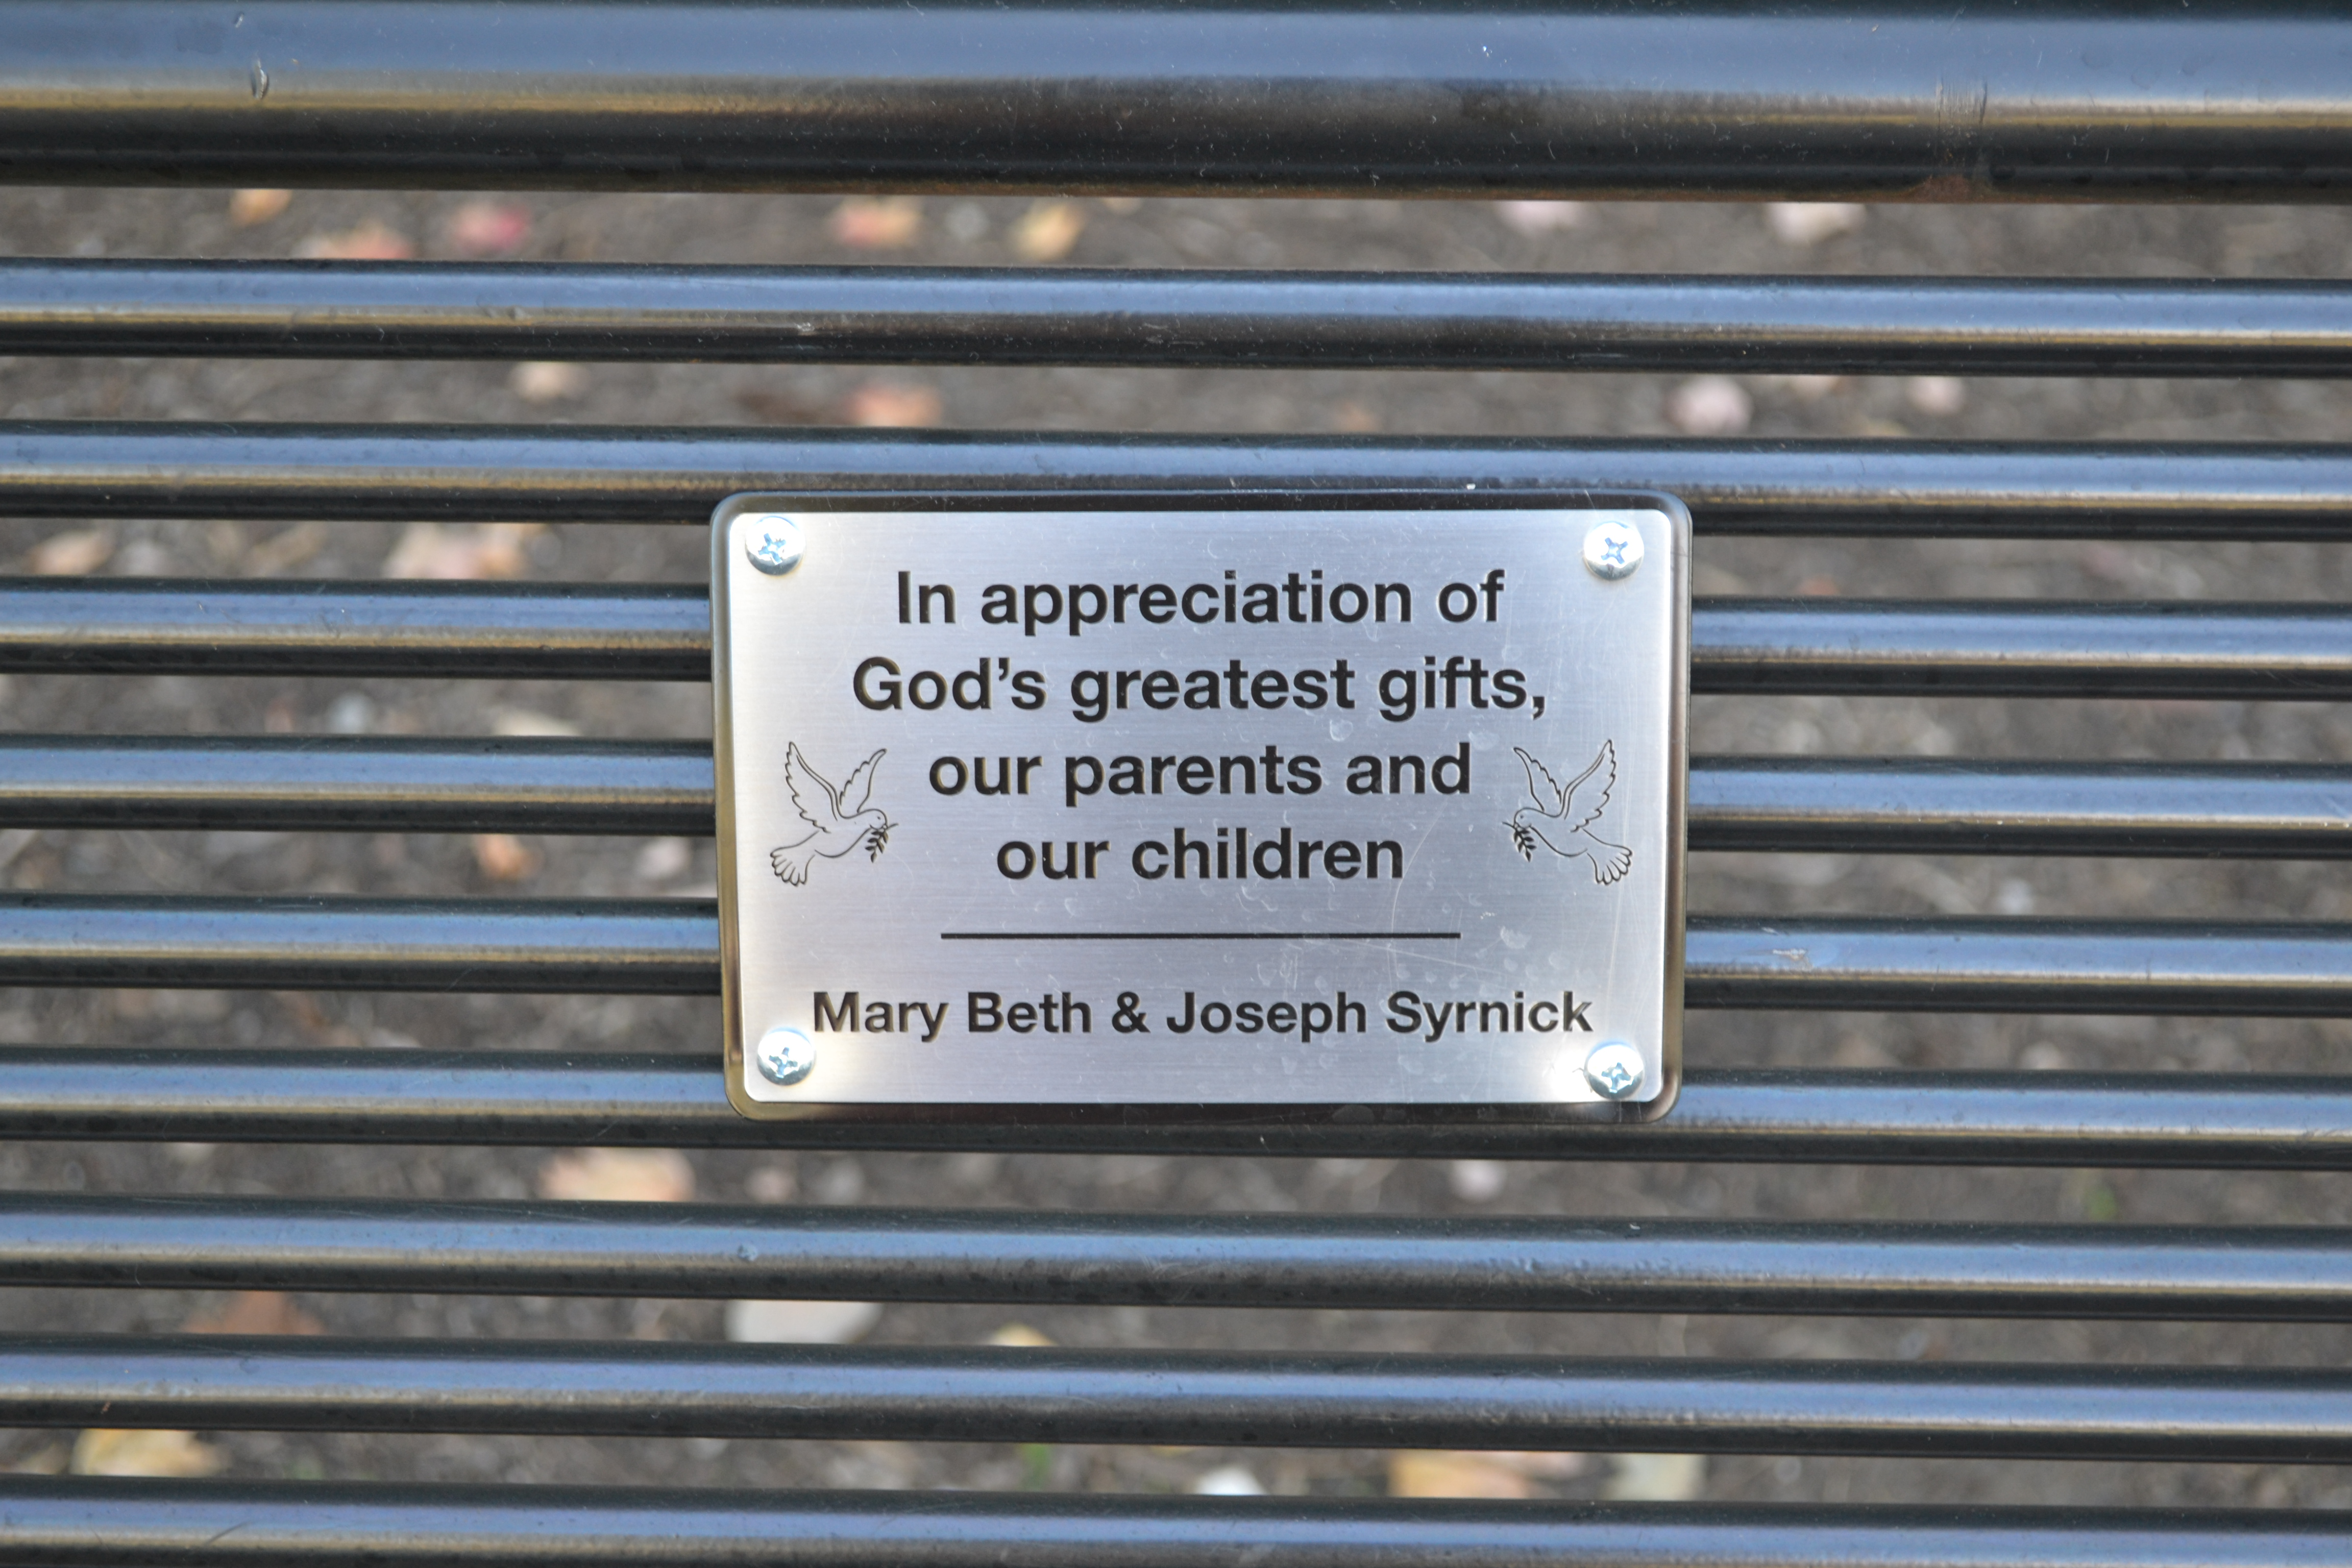 Sponsors receive a small, personalized plaque